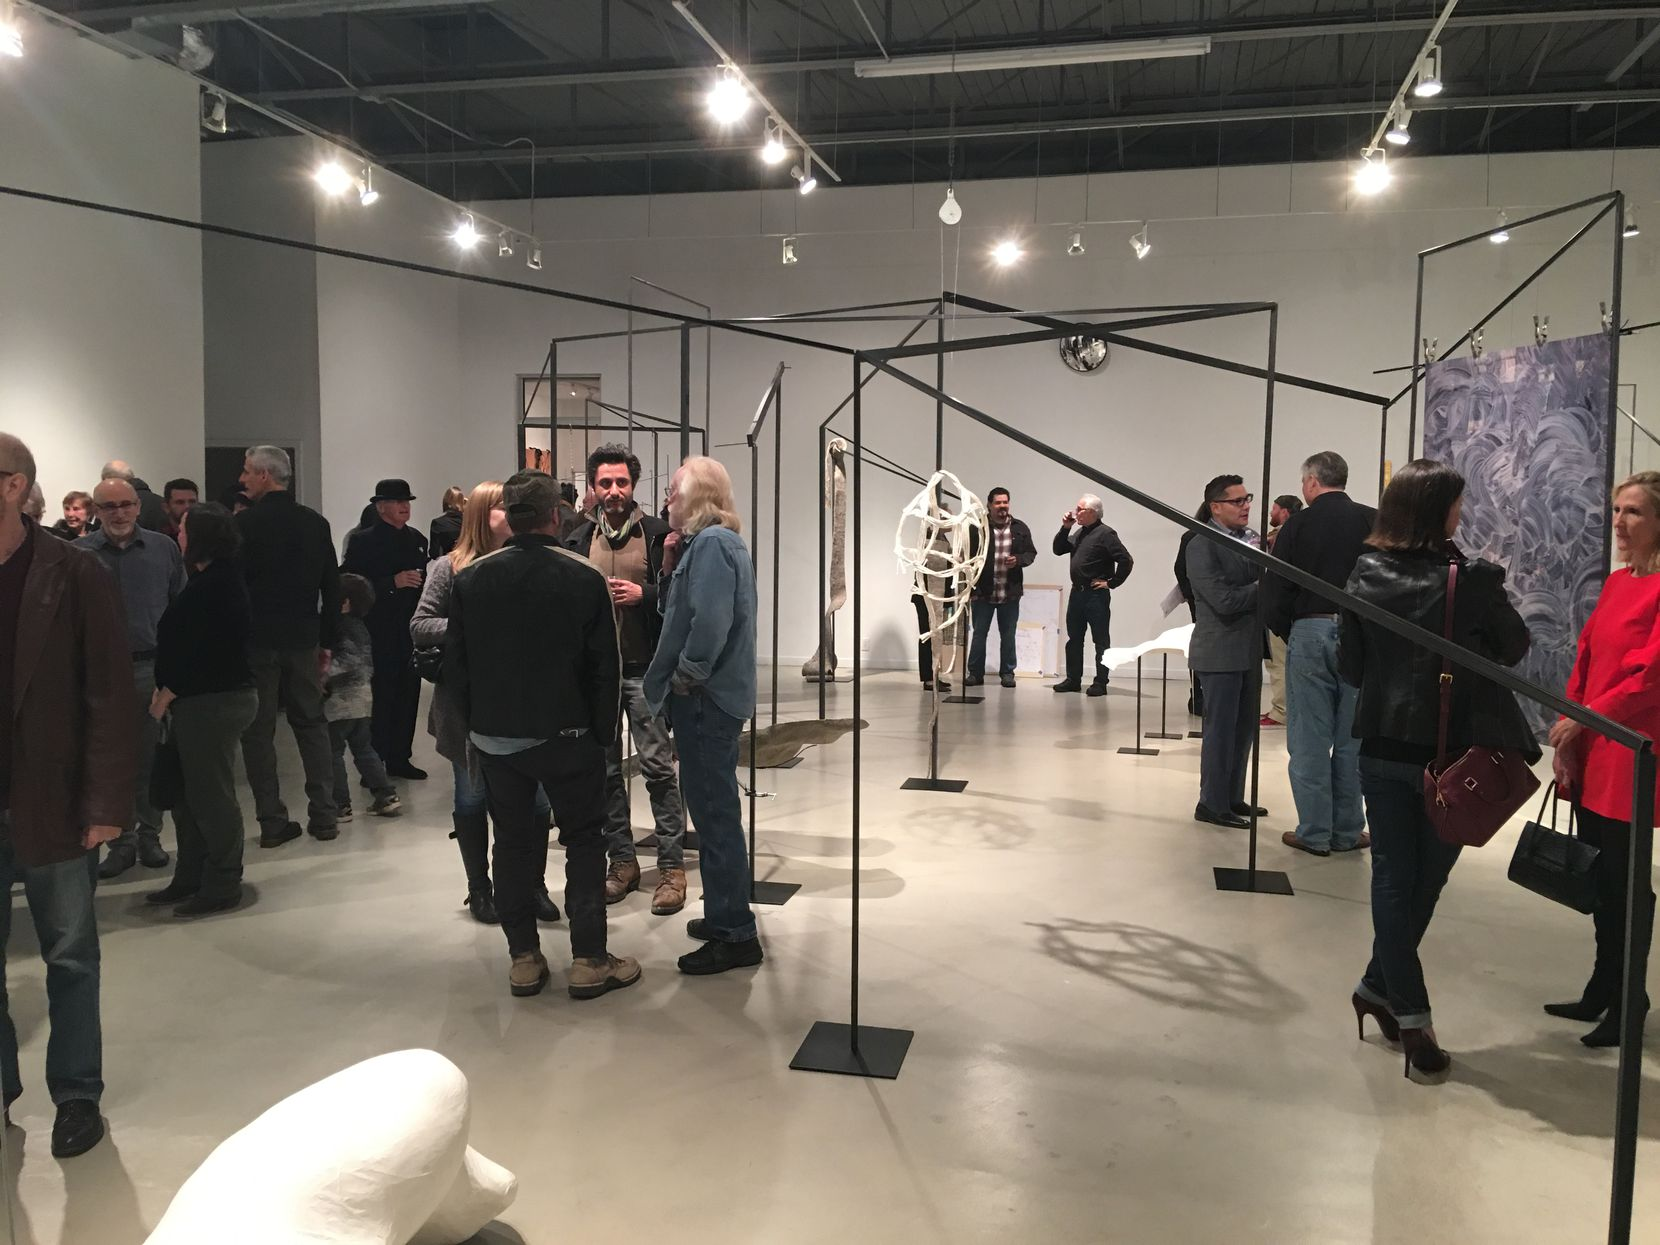 """Opening night of France Bagley's """"The Lay of the Land"""" at Kirk Hopper gallery. (Rick Brettell/The Dallas Morning News)"""